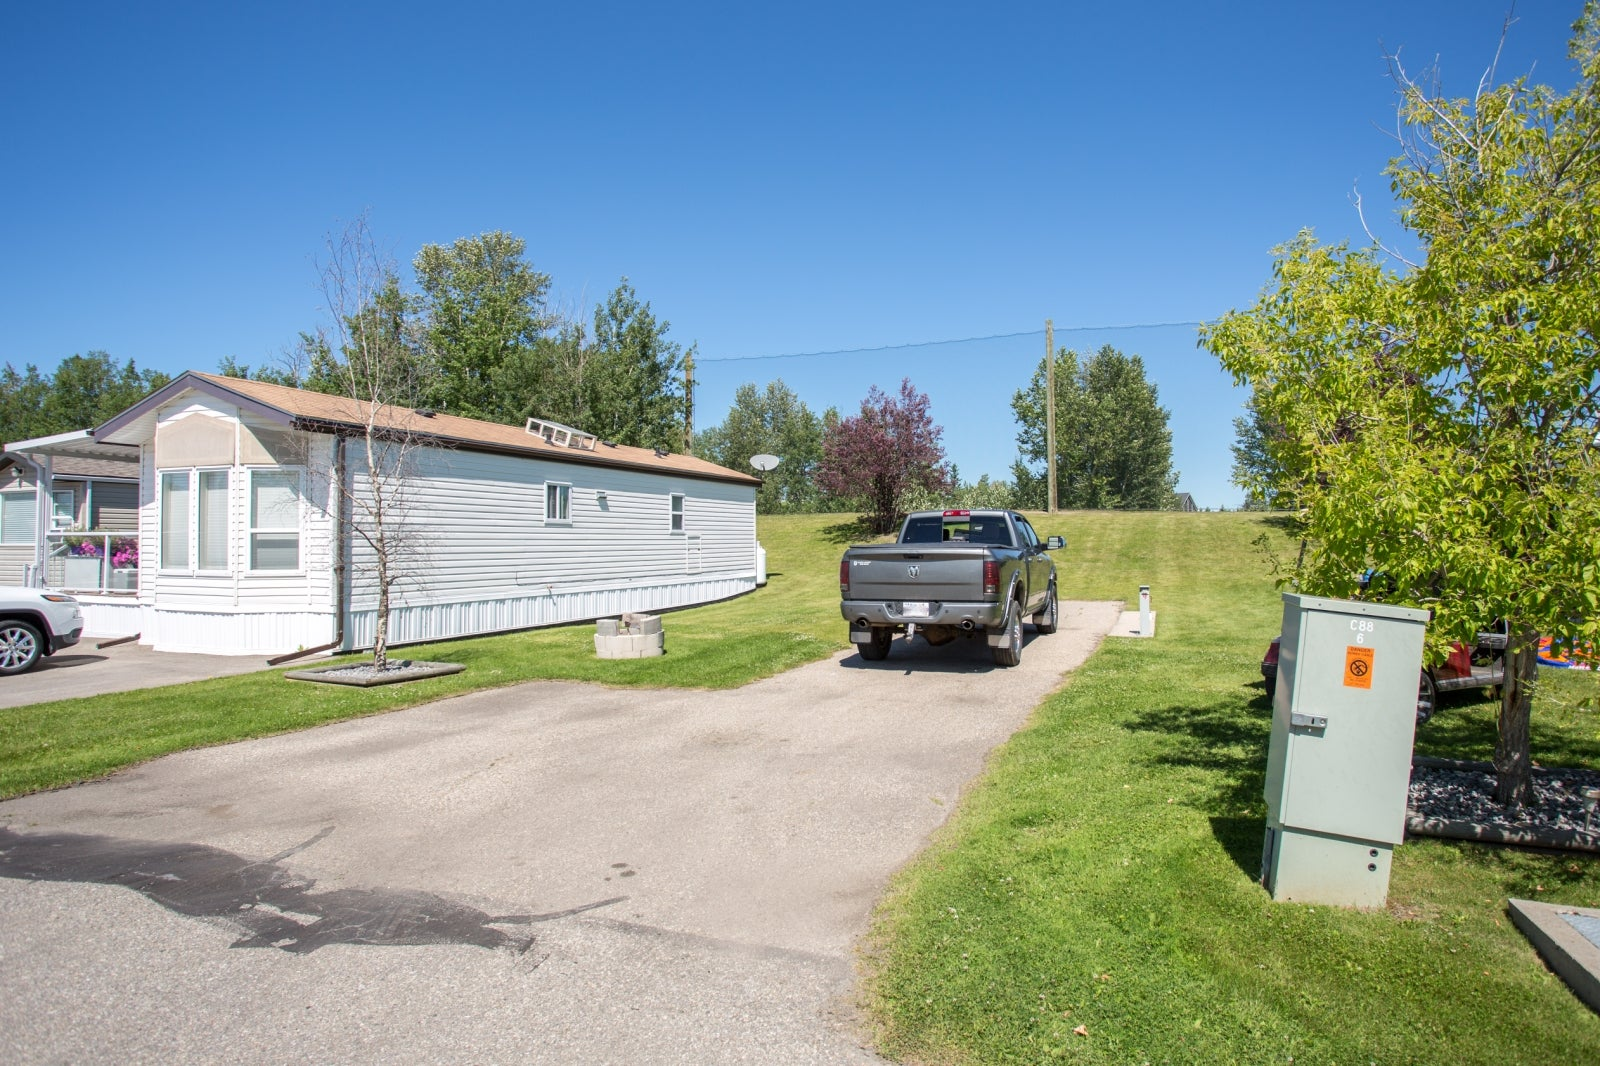 3009 -25074 South Pine Lake Road, Red Deer County  - Whispering Pines Condominium for sale(A1018672) #1